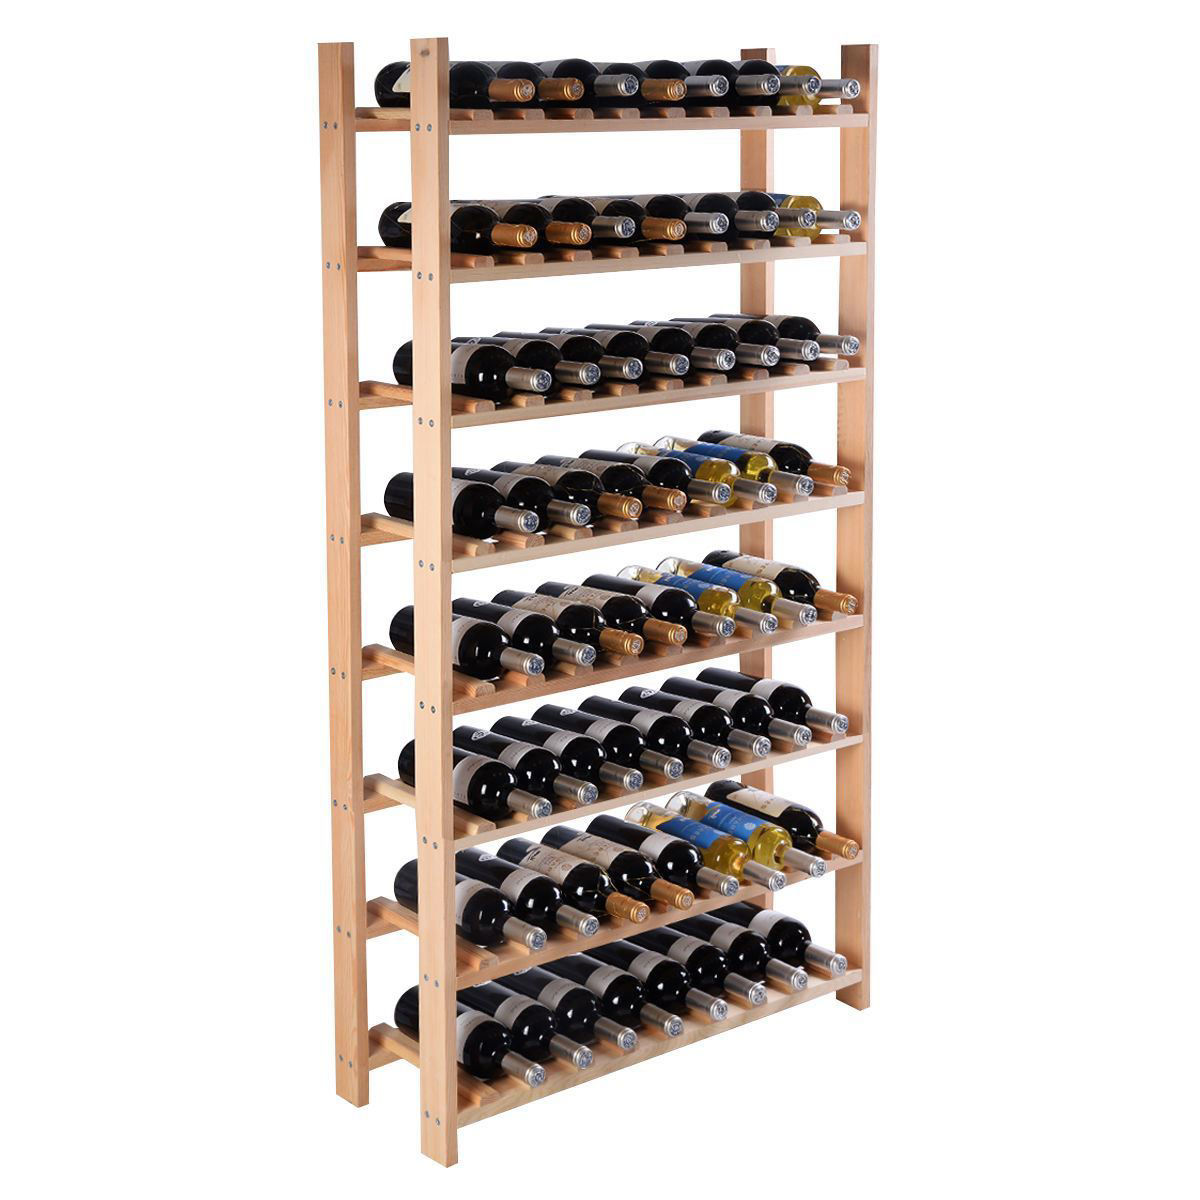 Picture of Wine Rack Holder Storage for 120 Bottles